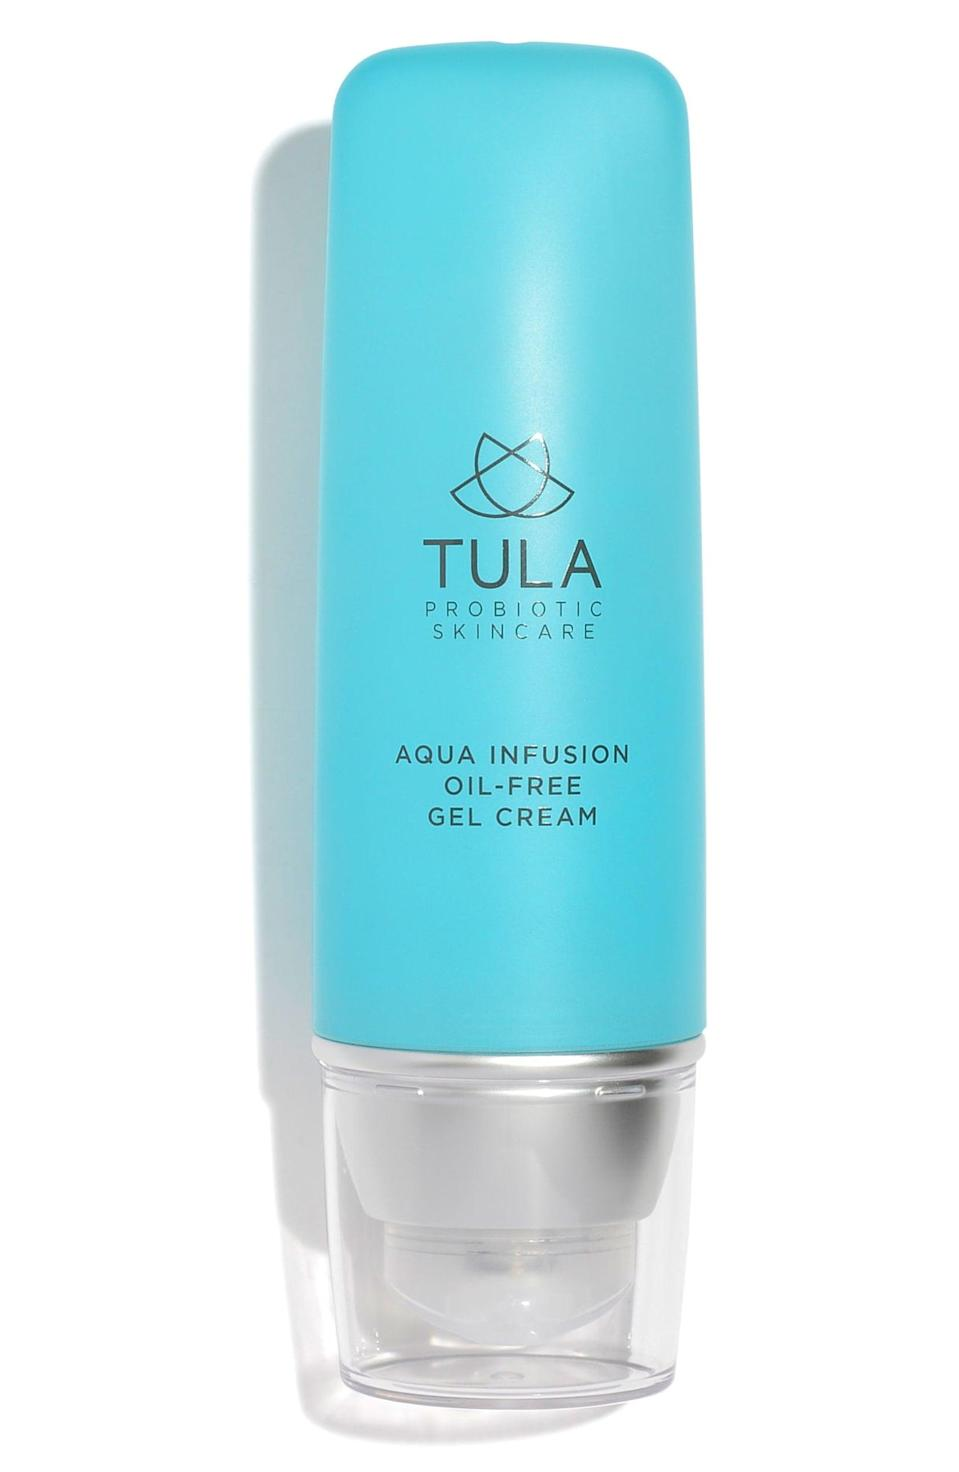 <p>This <span>Tula Probiotic Skincare Aqua Infusion Oil-Free Gel Cream</span> ($48) is a saving grace for your face. The cactus infusion helps calm stressed or irritated skin to produce a hydrated summertime glow.</p>